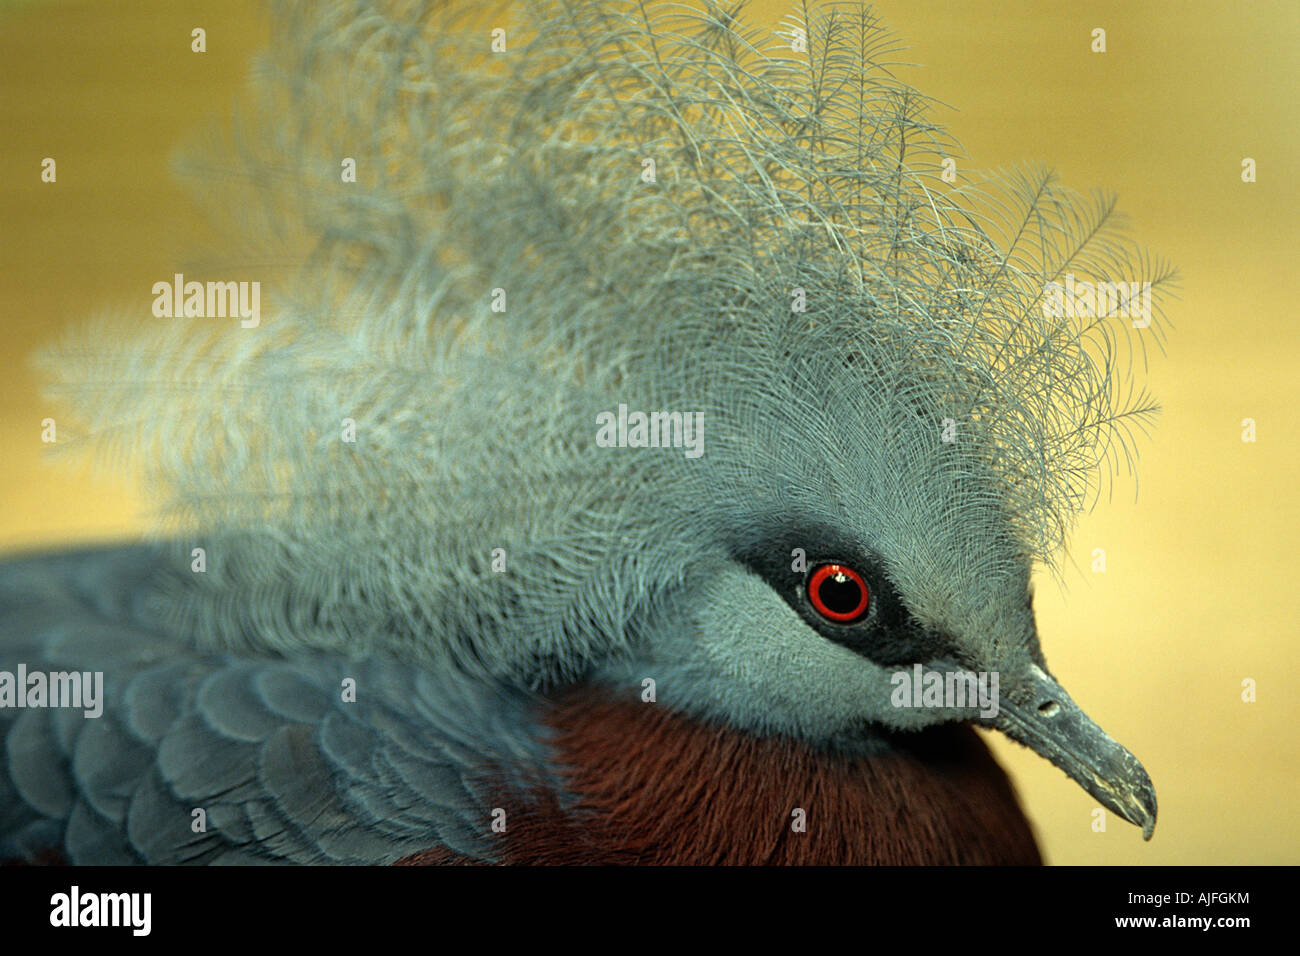 Victoria crowned pigeon - Stock Image